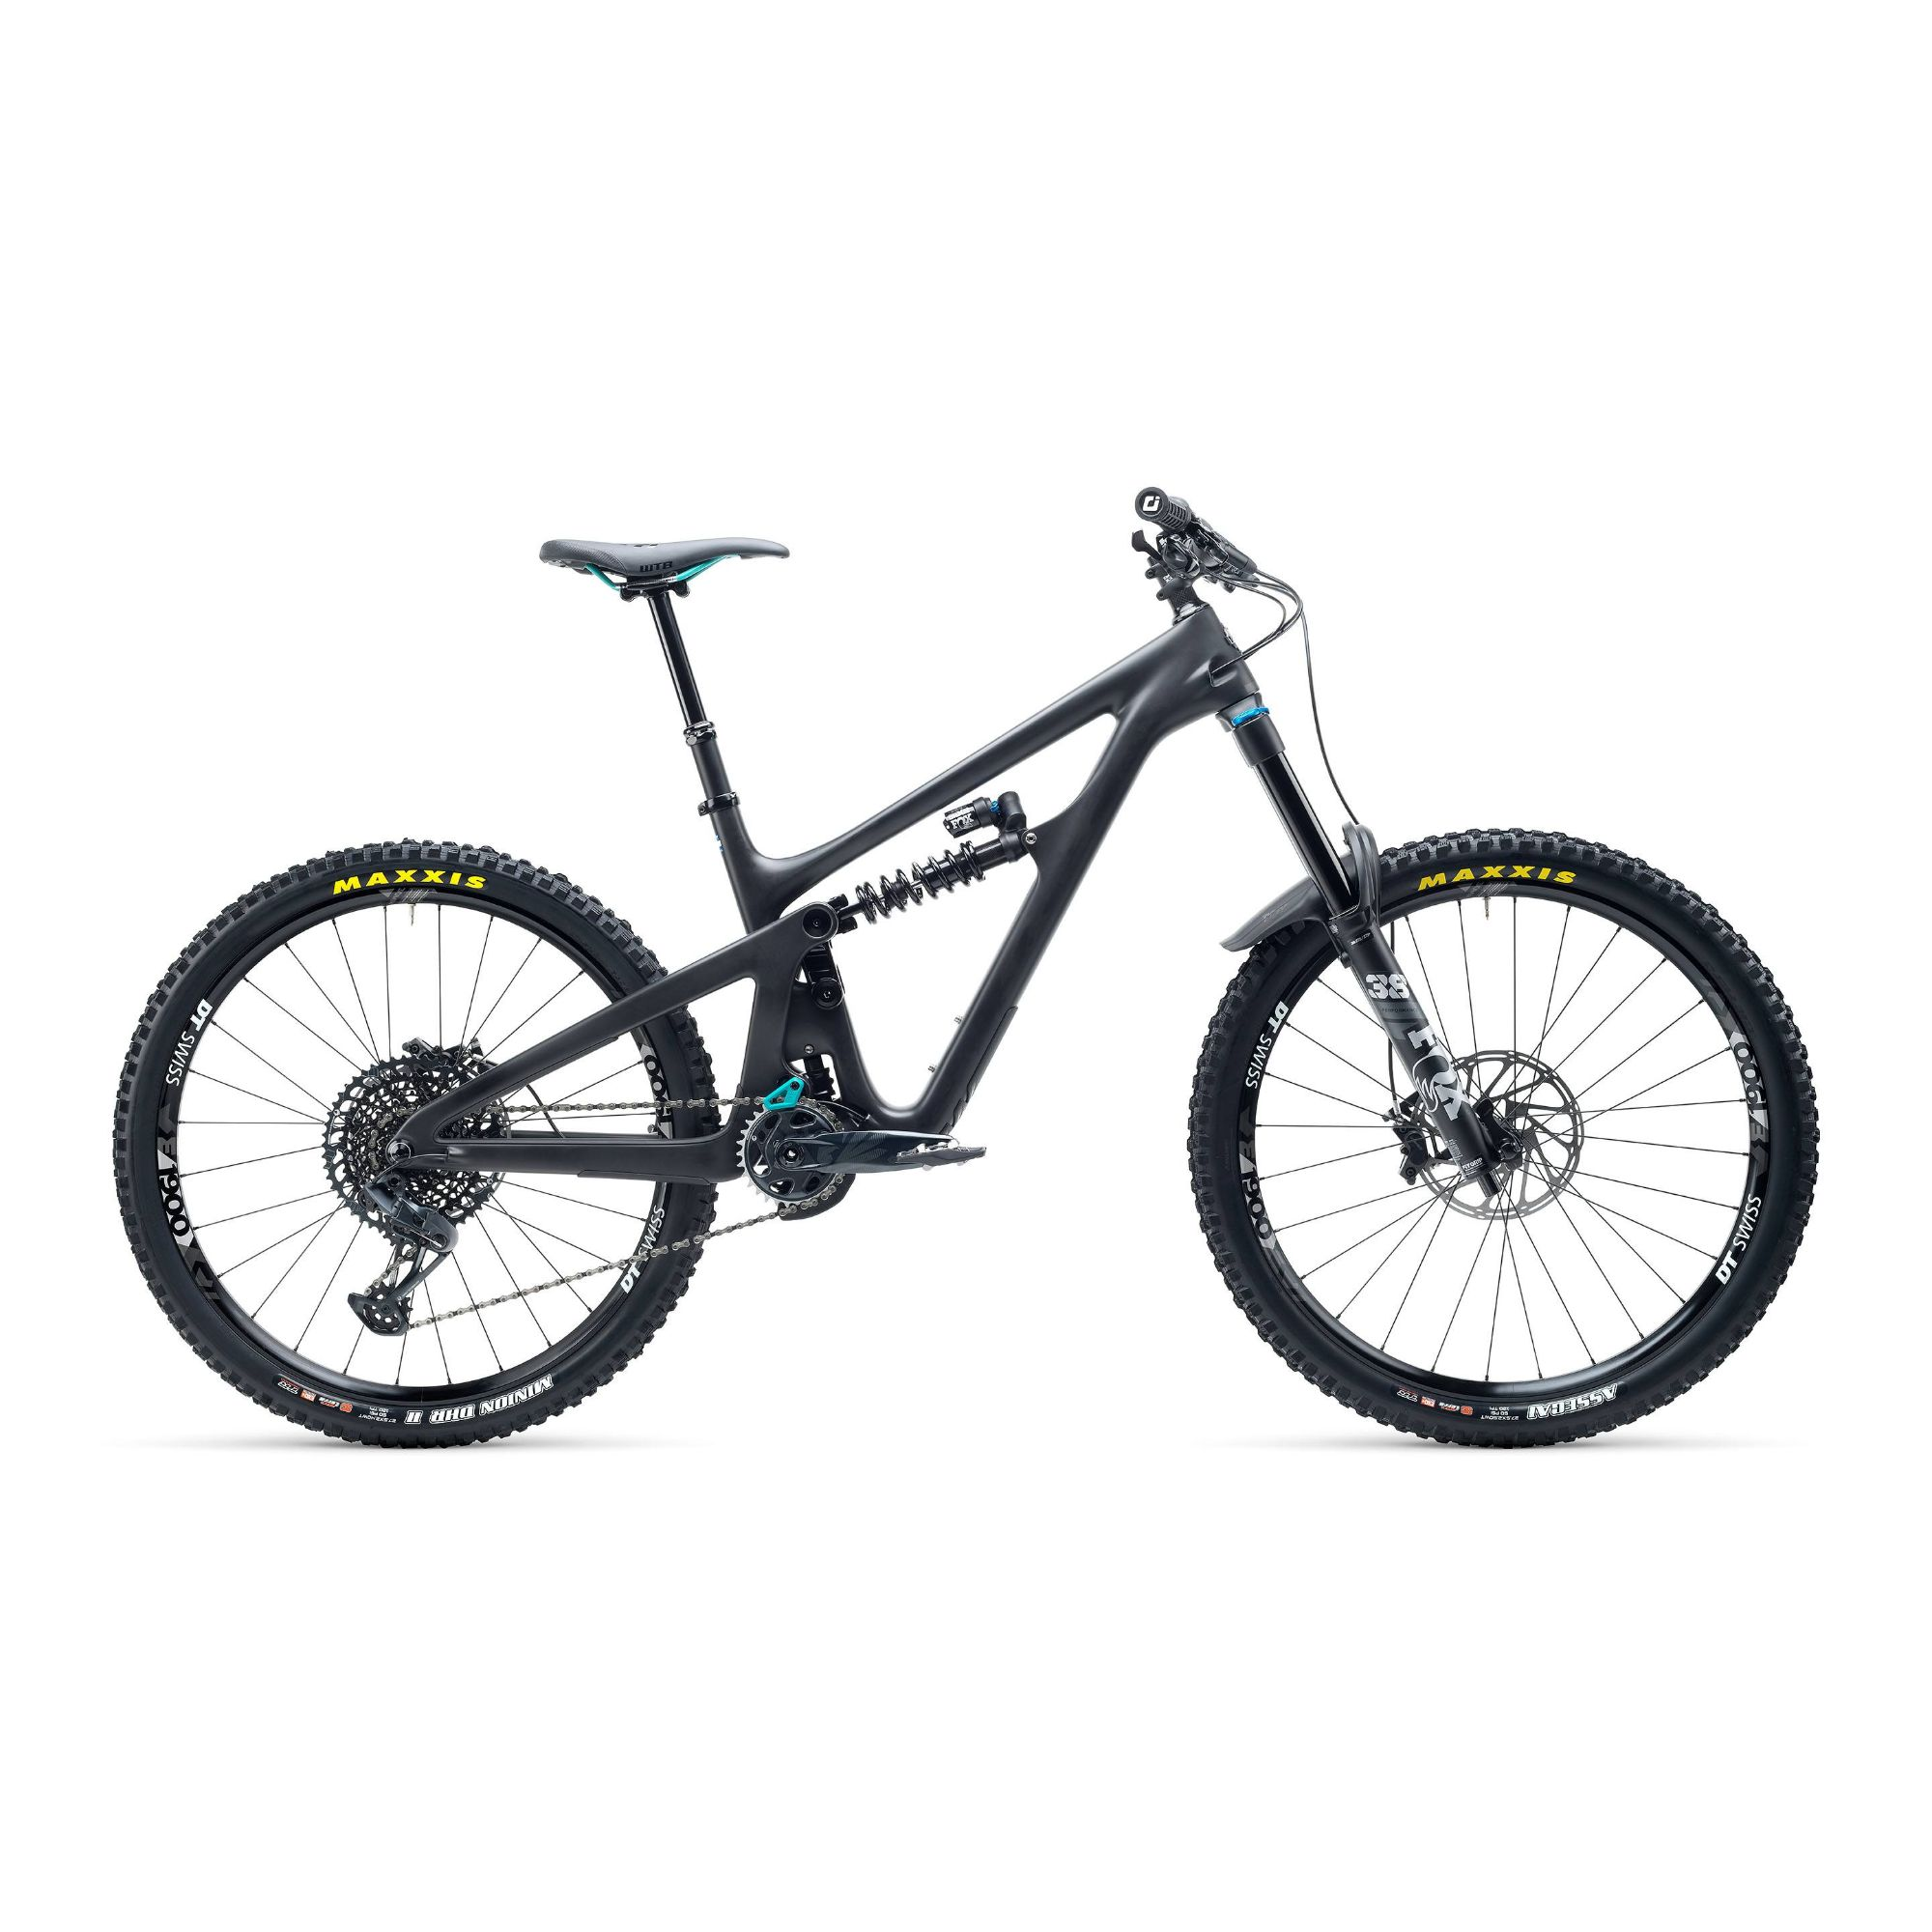 Yeti SB165 C Series C2 27.5 GX Carbon Mountain Bike 2021 Raw / Grey